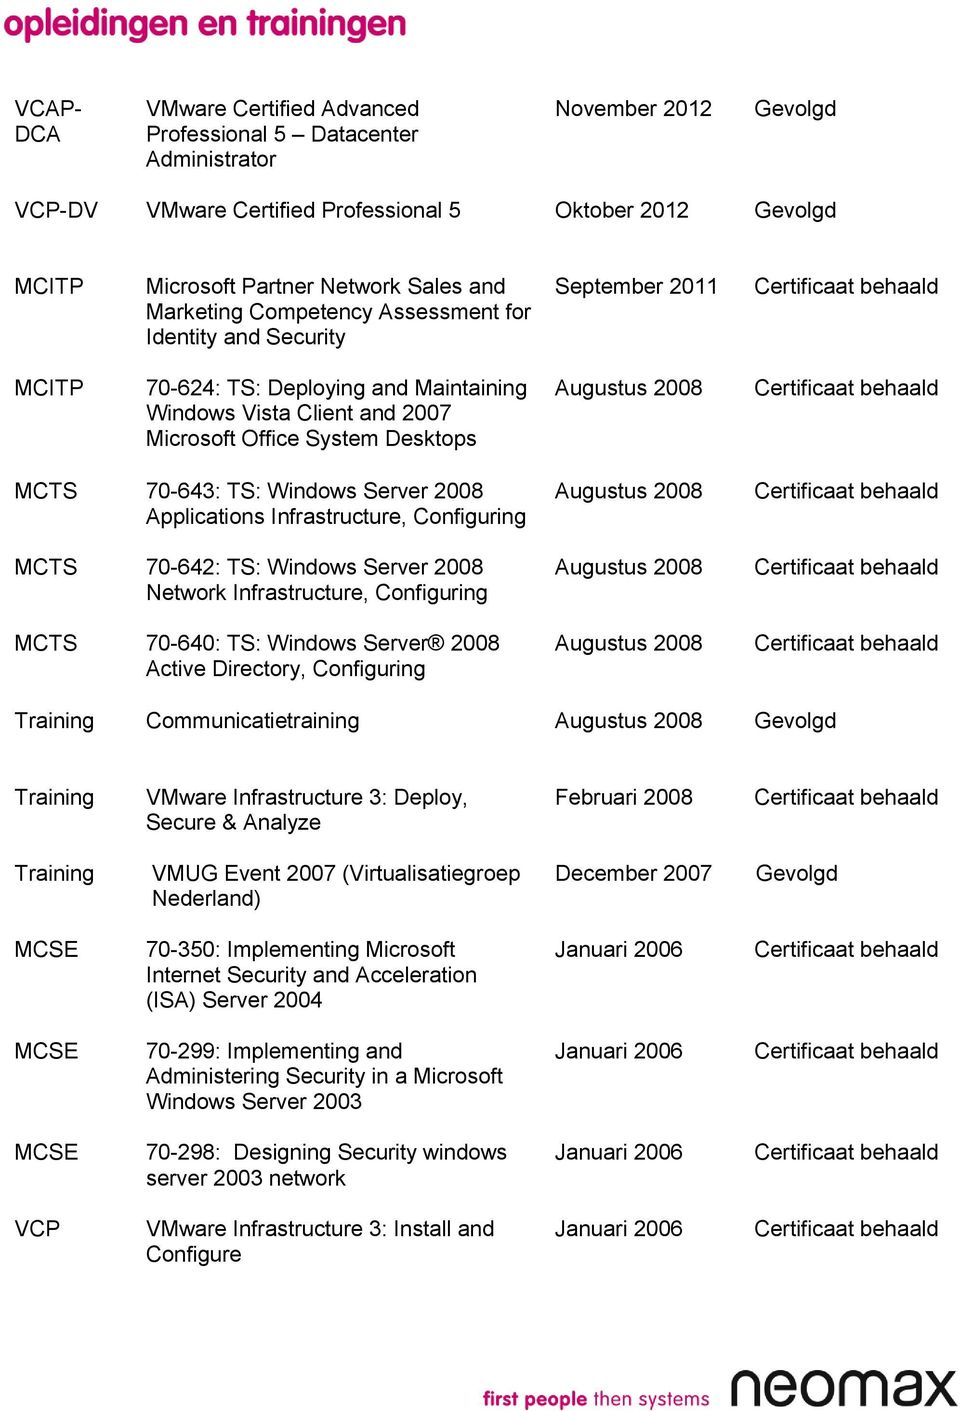 70-643: TS: Windows Server 2008 Applications Infrastructure, Configuring MCTS 70-642: TS: Windows Server 2008 Network Infrastructure, Configuring MCTS 70-640: TS: Windows Server 2008 Active